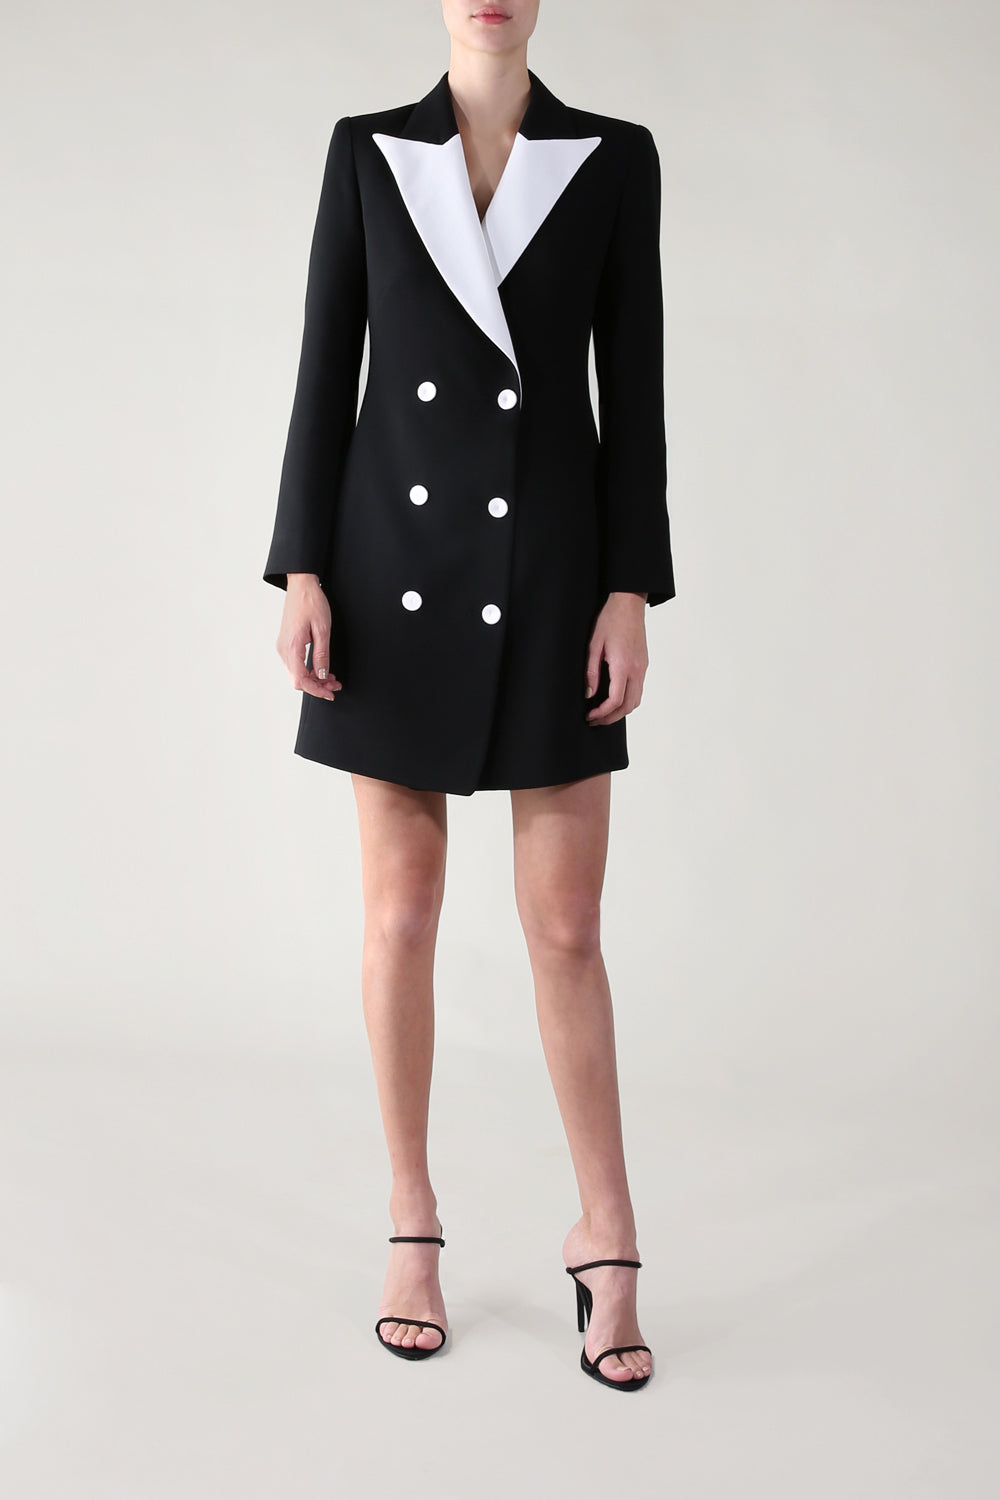 OPPOSITES ATTRACT TUX COAT DRESS